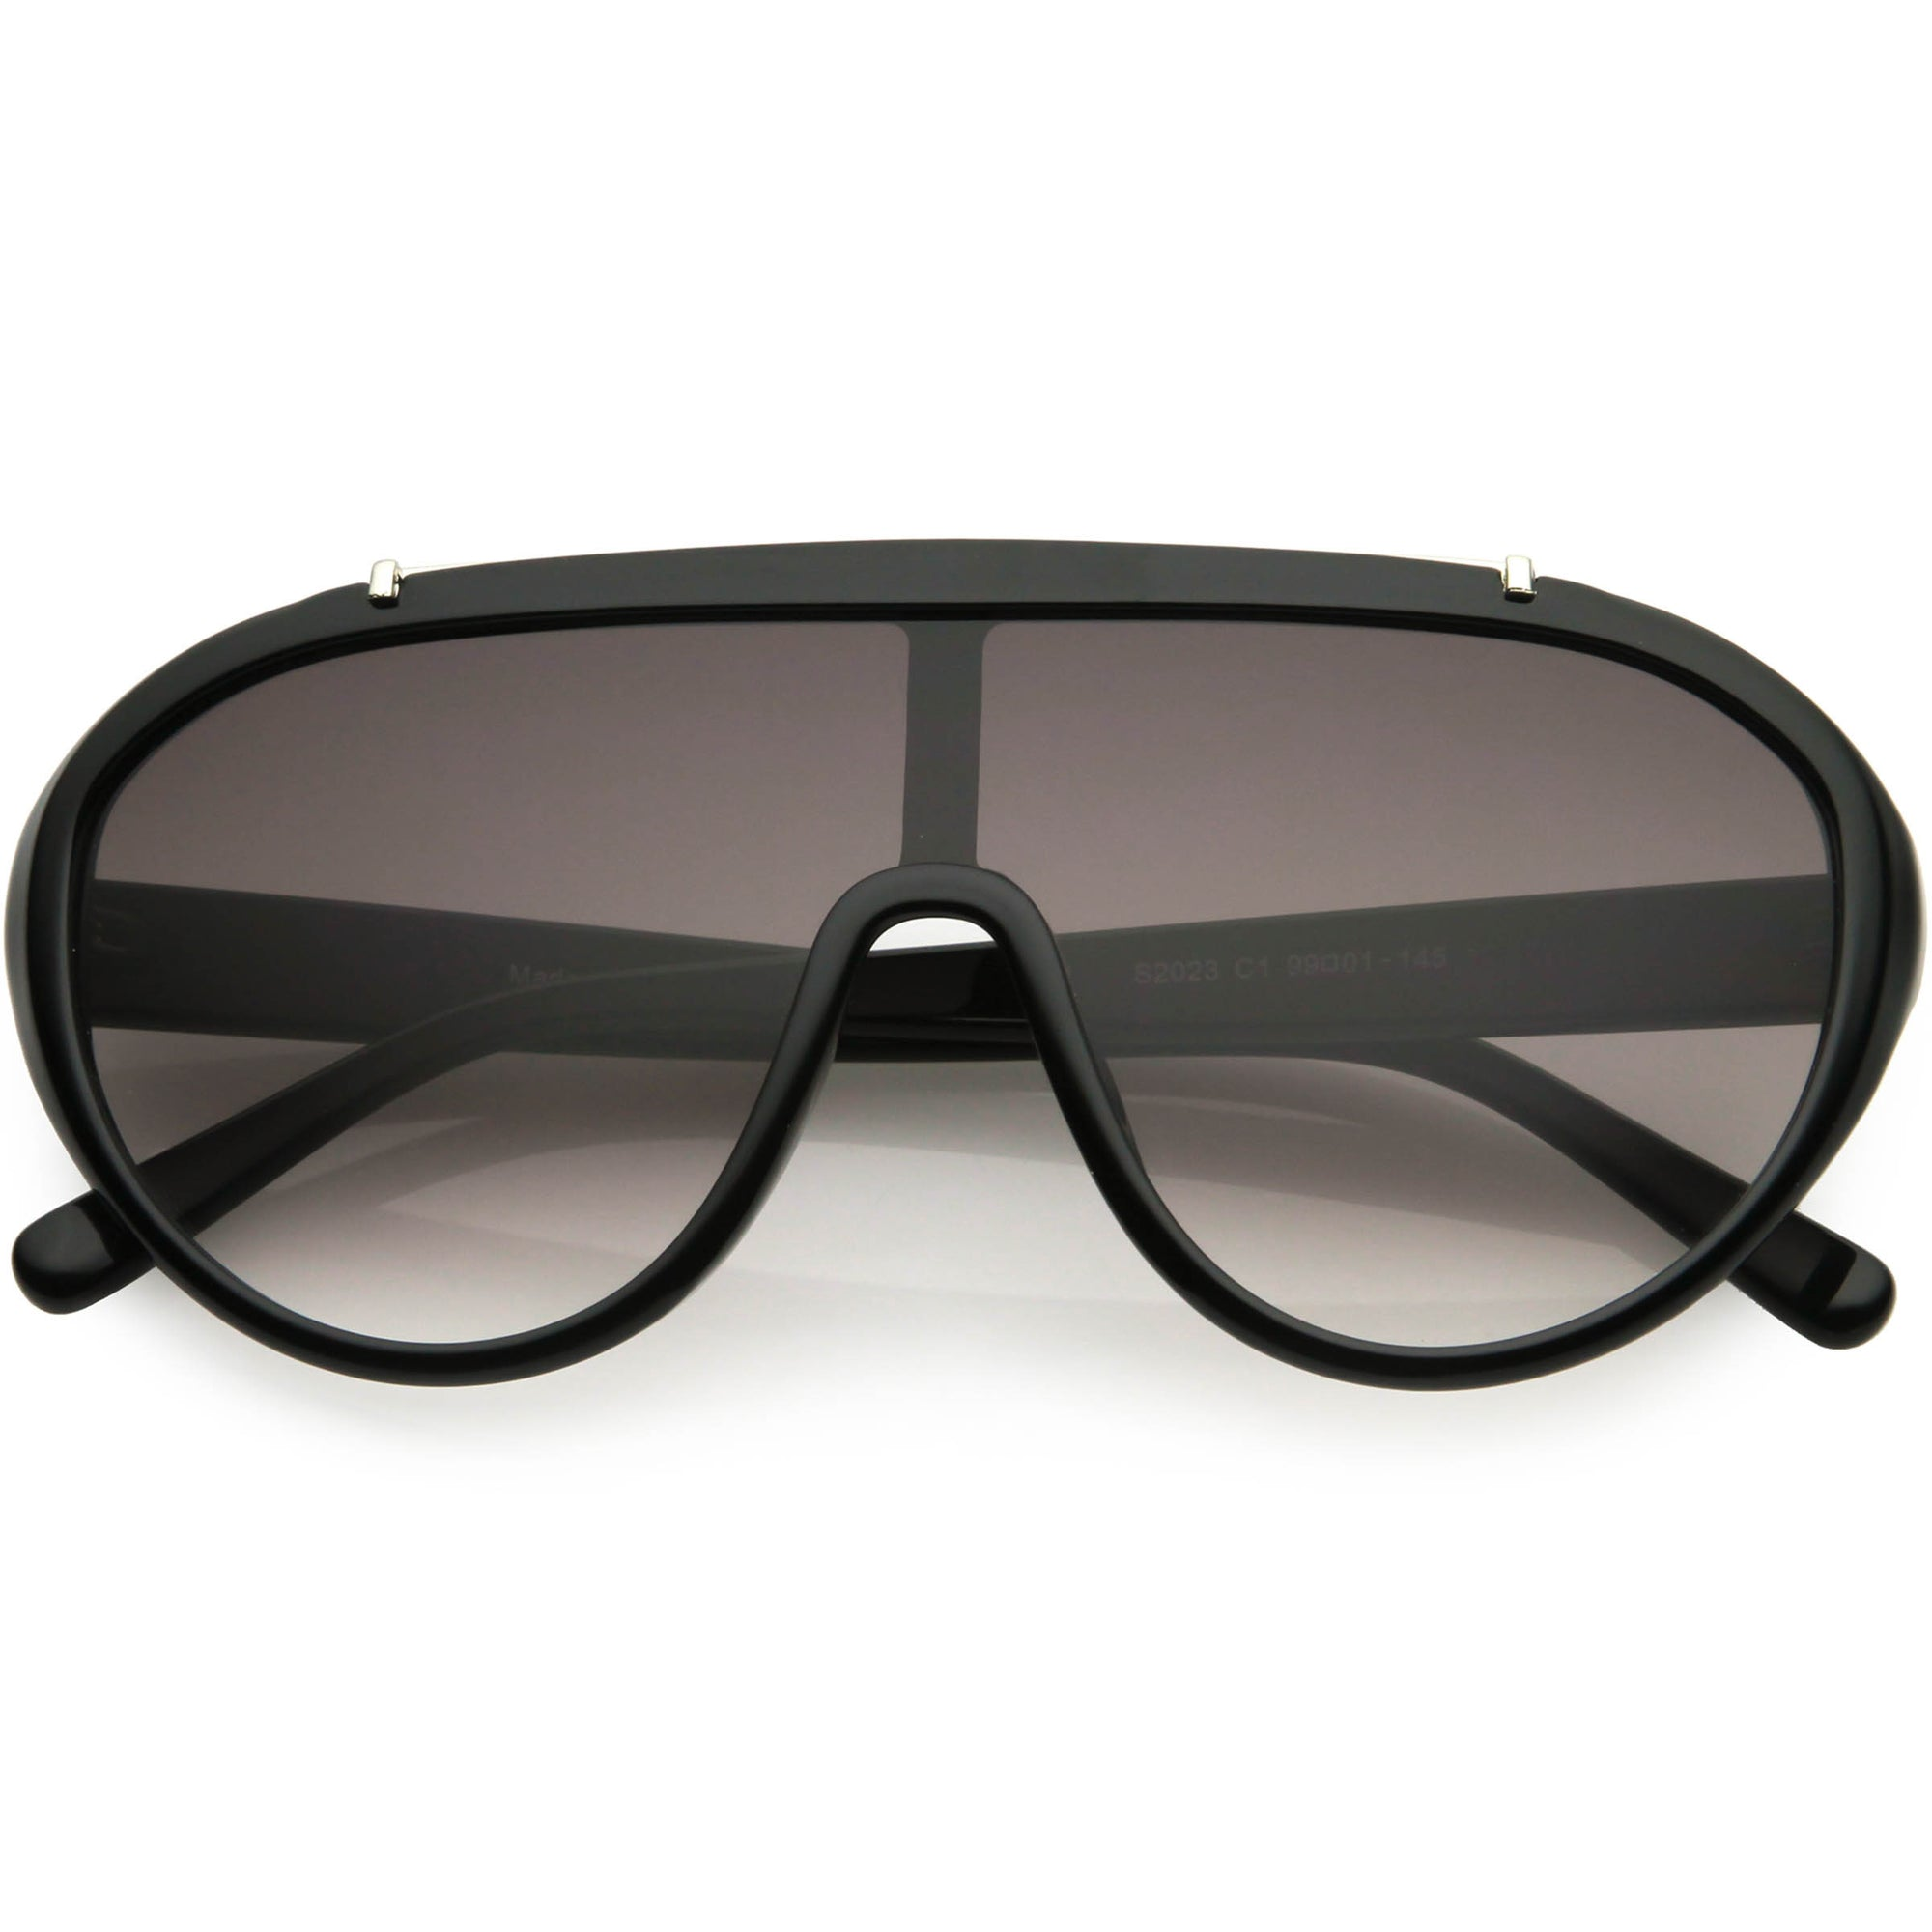 Sporty Fashion Oversize Metal Brow Bar Accent Shield Sunglasses C980